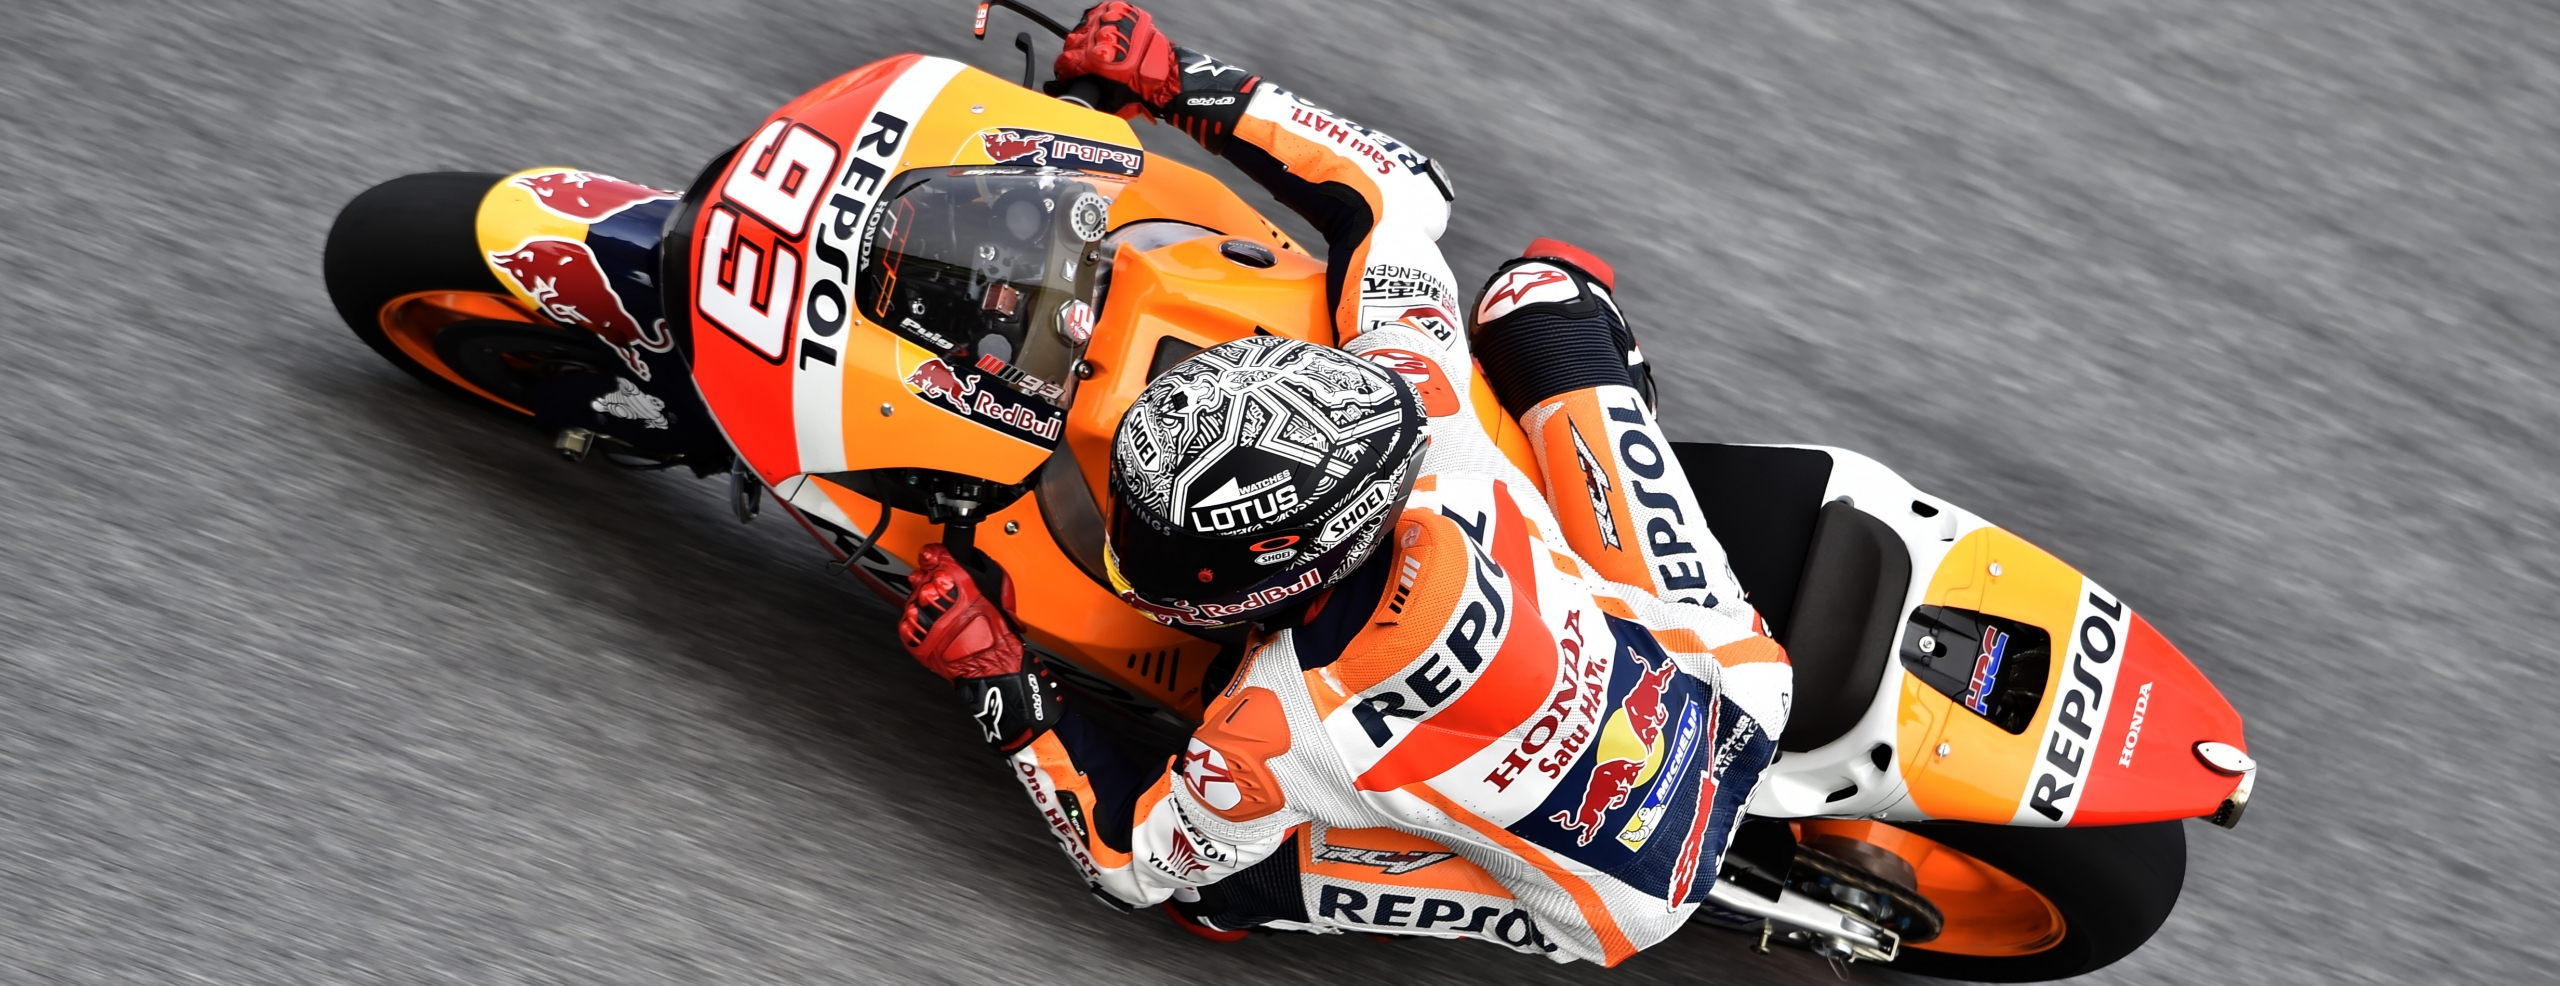 Repsol Honda Team makes the most of test's weather-affected last day